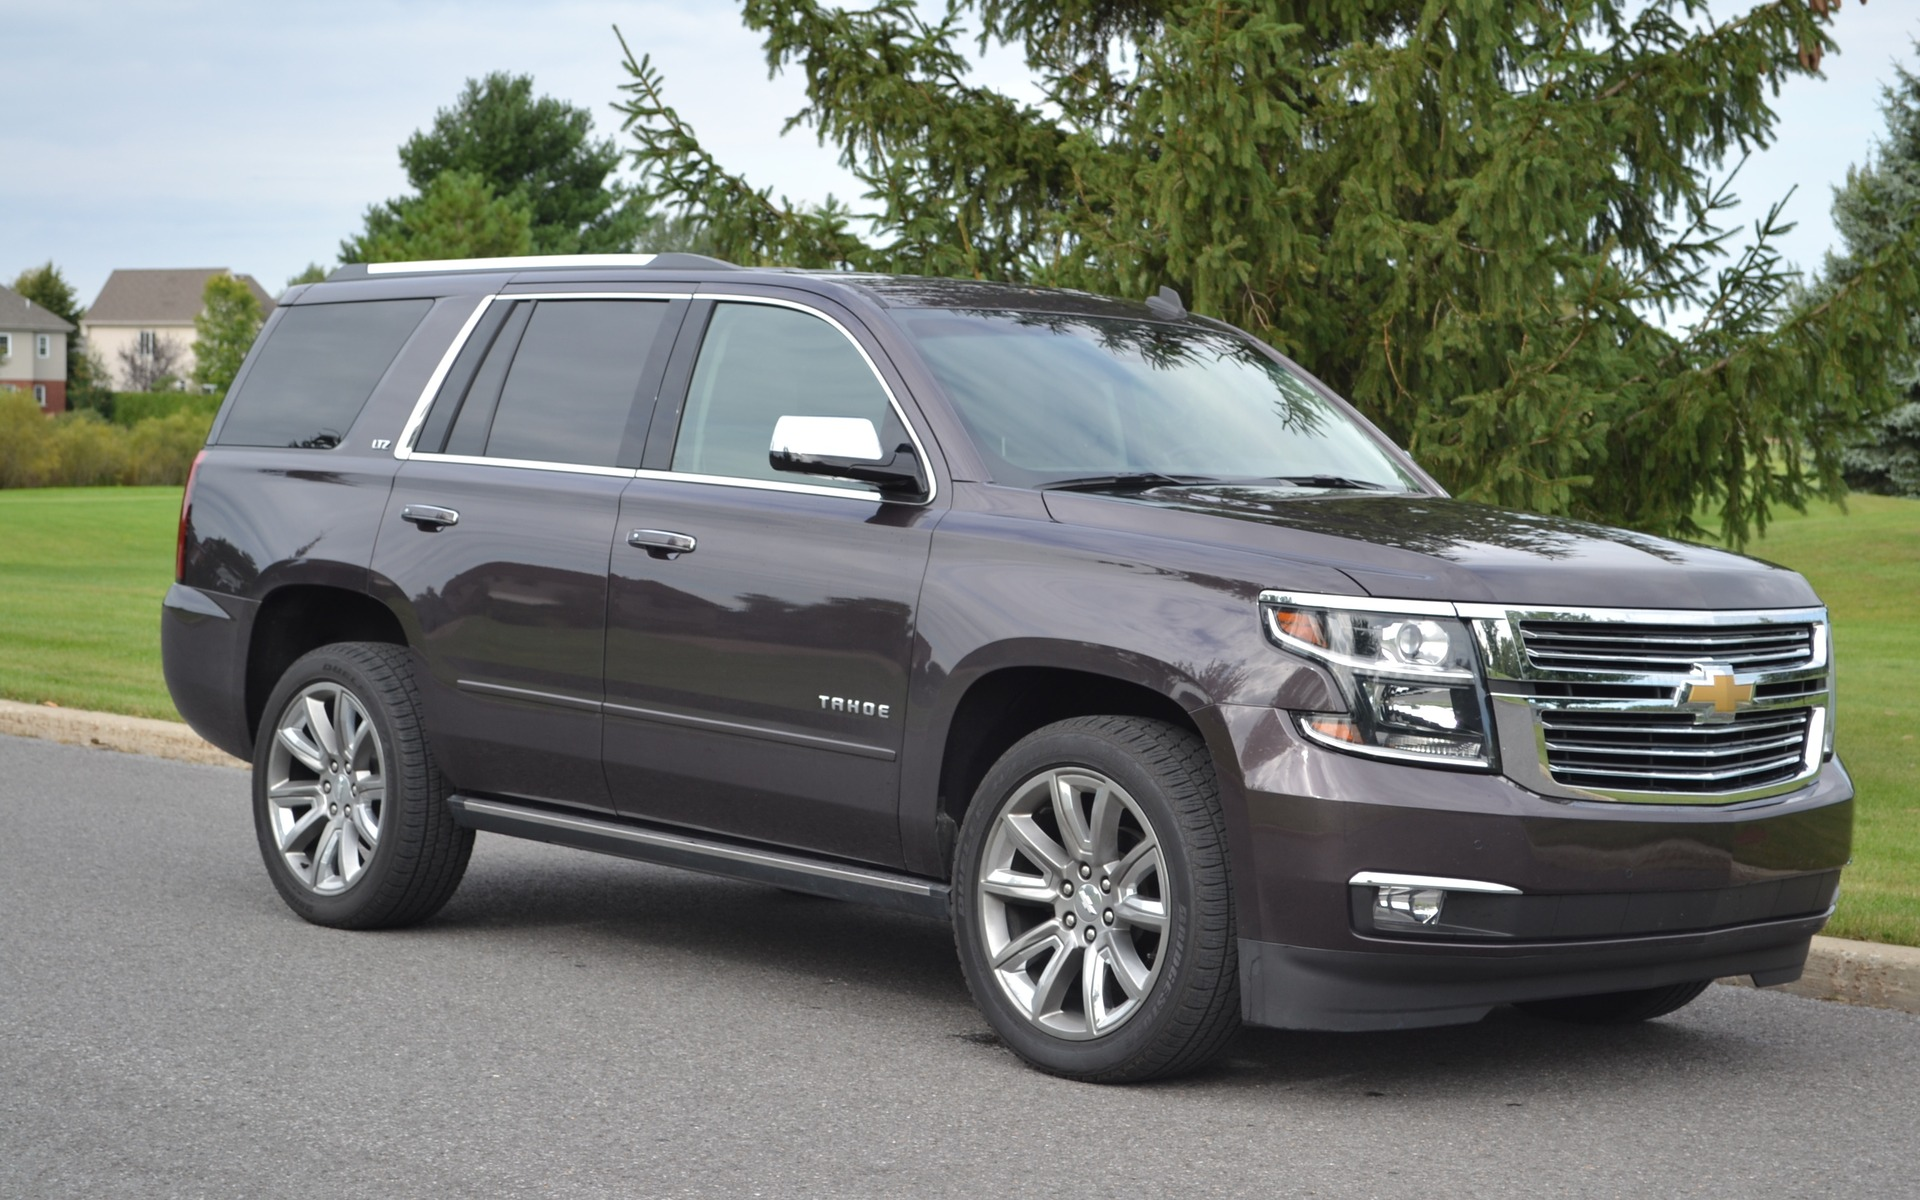 2016 Chevrolet Tahoe  News reviews picture galleries and videos